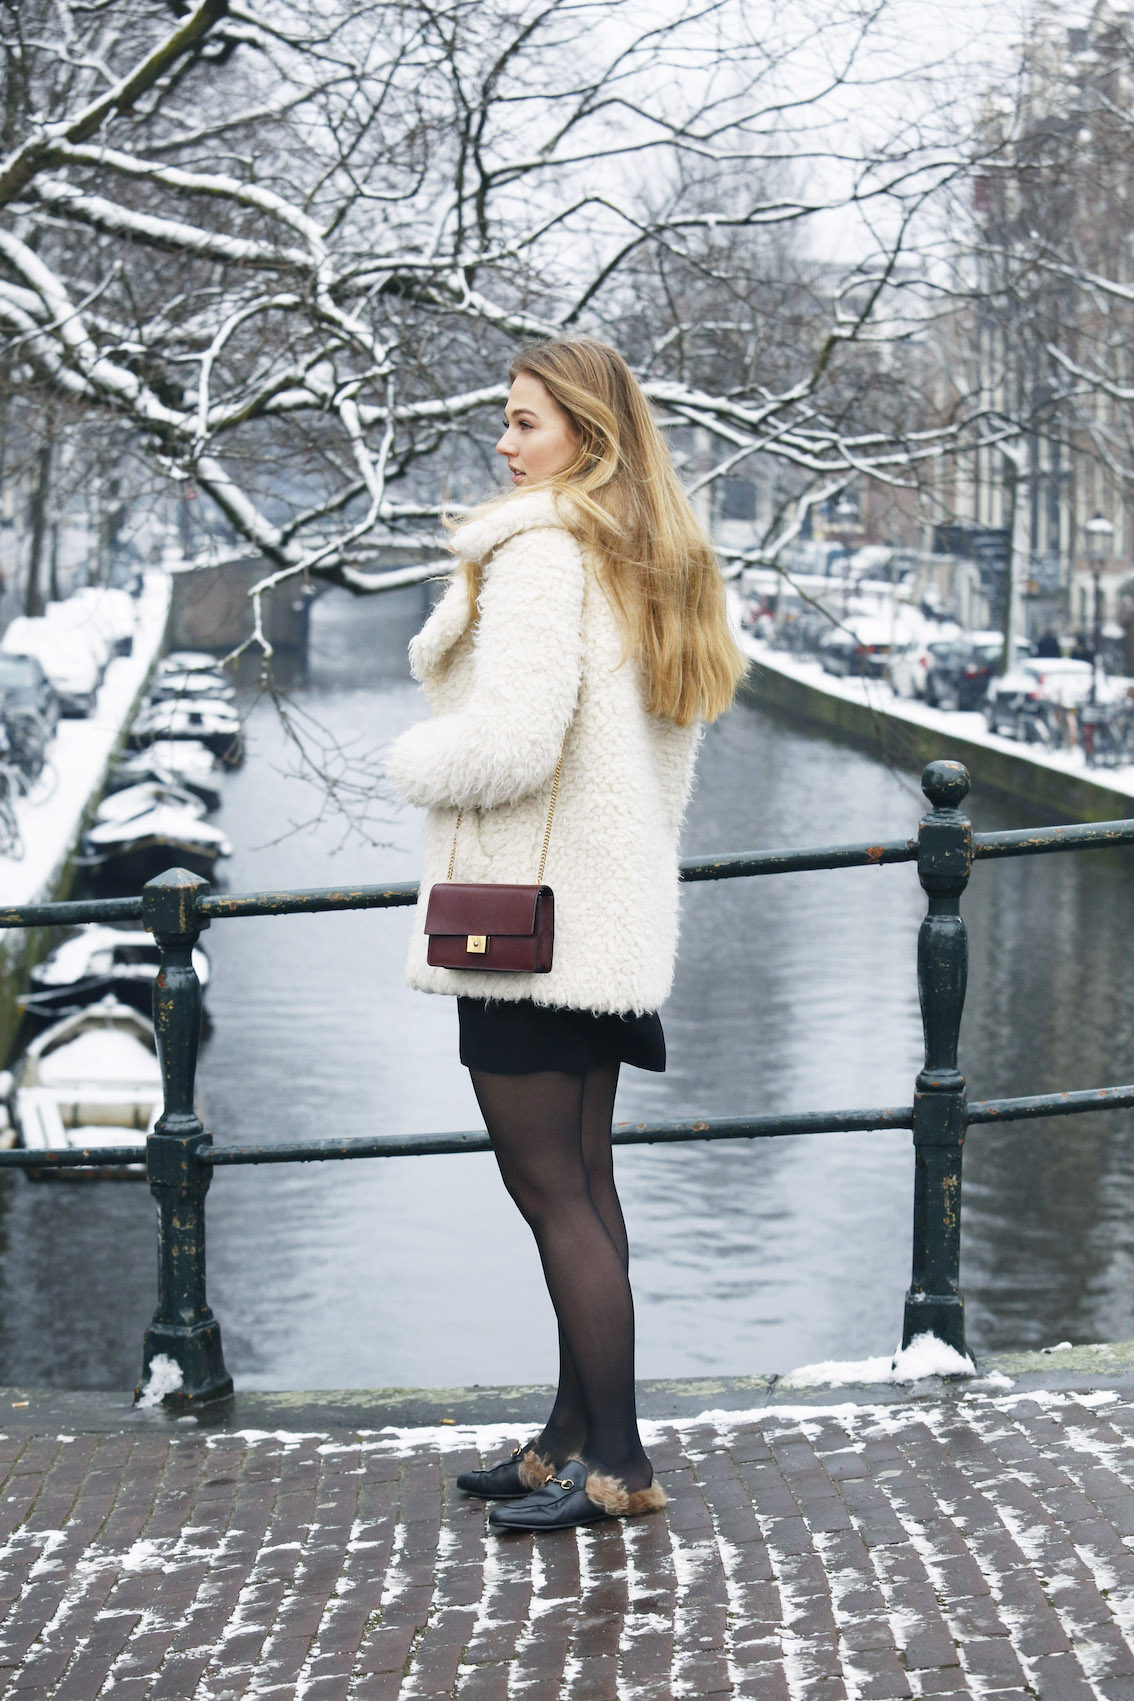 floortjeloves, plan78, plan 78 project, asos, furry coat, primark, embroidered dress, gucci, gucci slippers, mulberry, mulberry bag, wolford